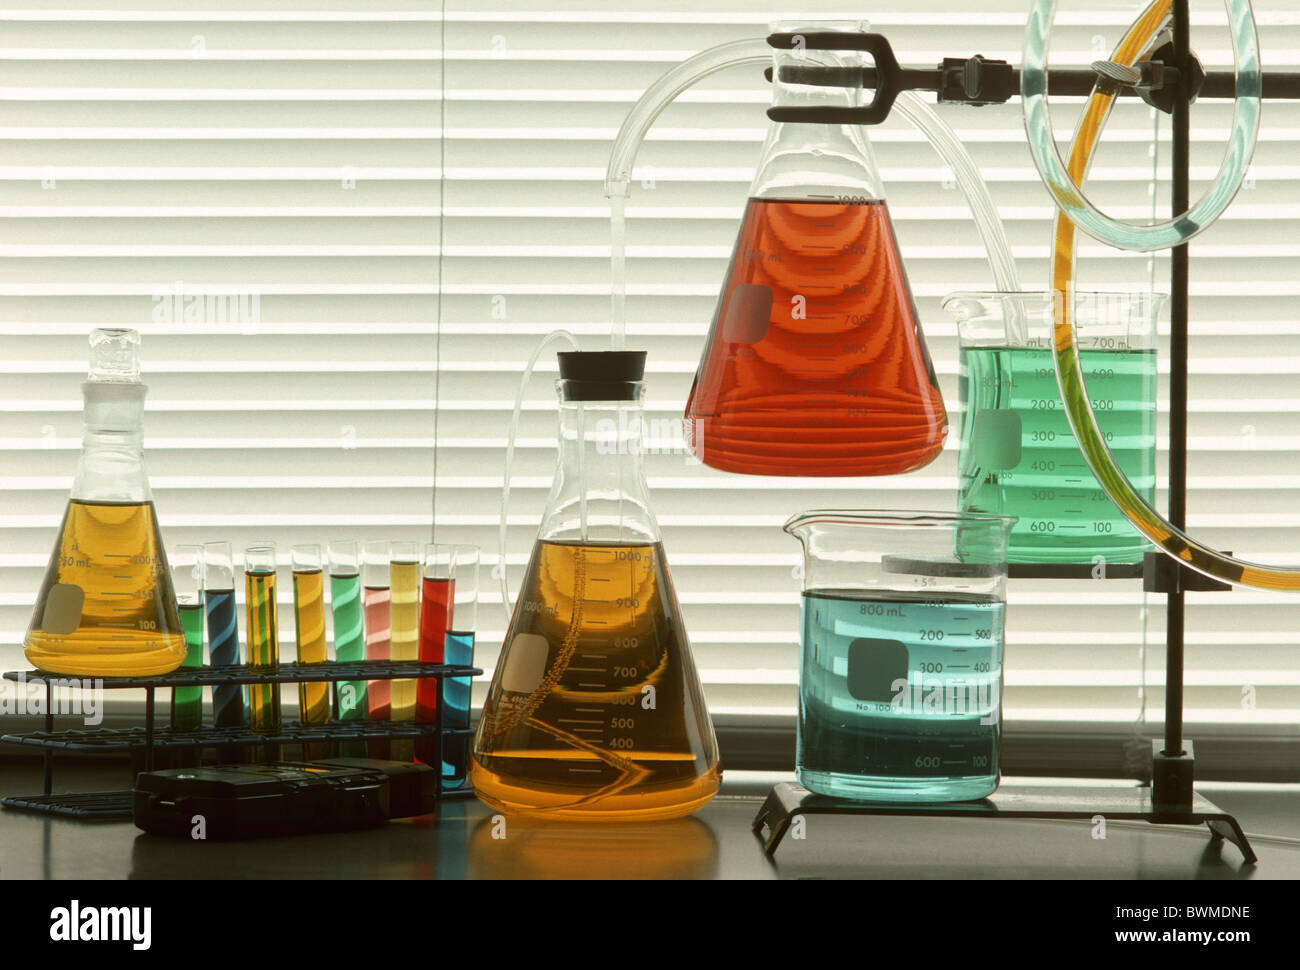 Scientific glassware and tubes filled with colored liquids against window blinds Stock Photo